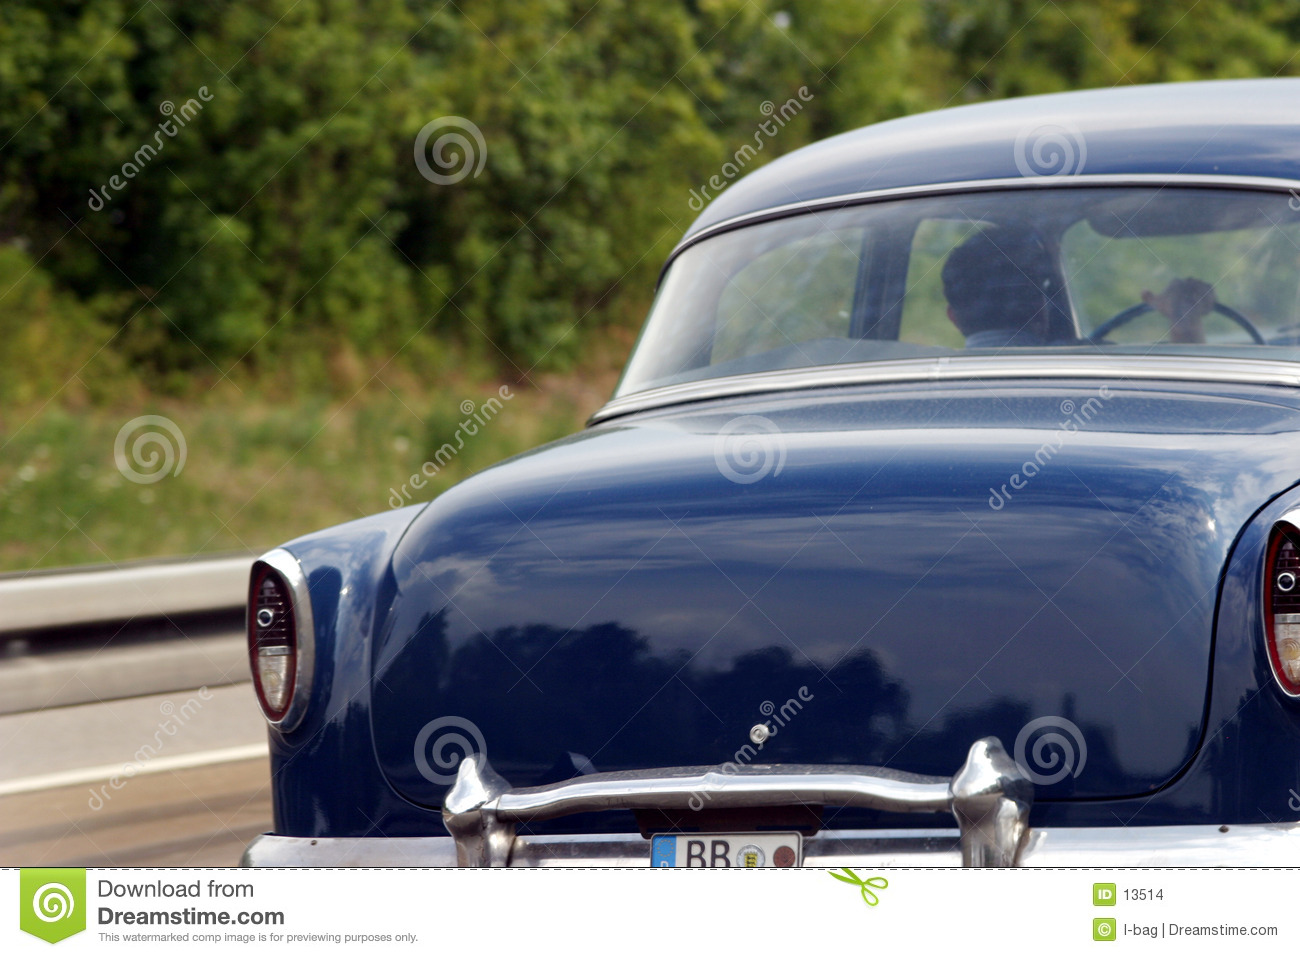 Driving the vintage car